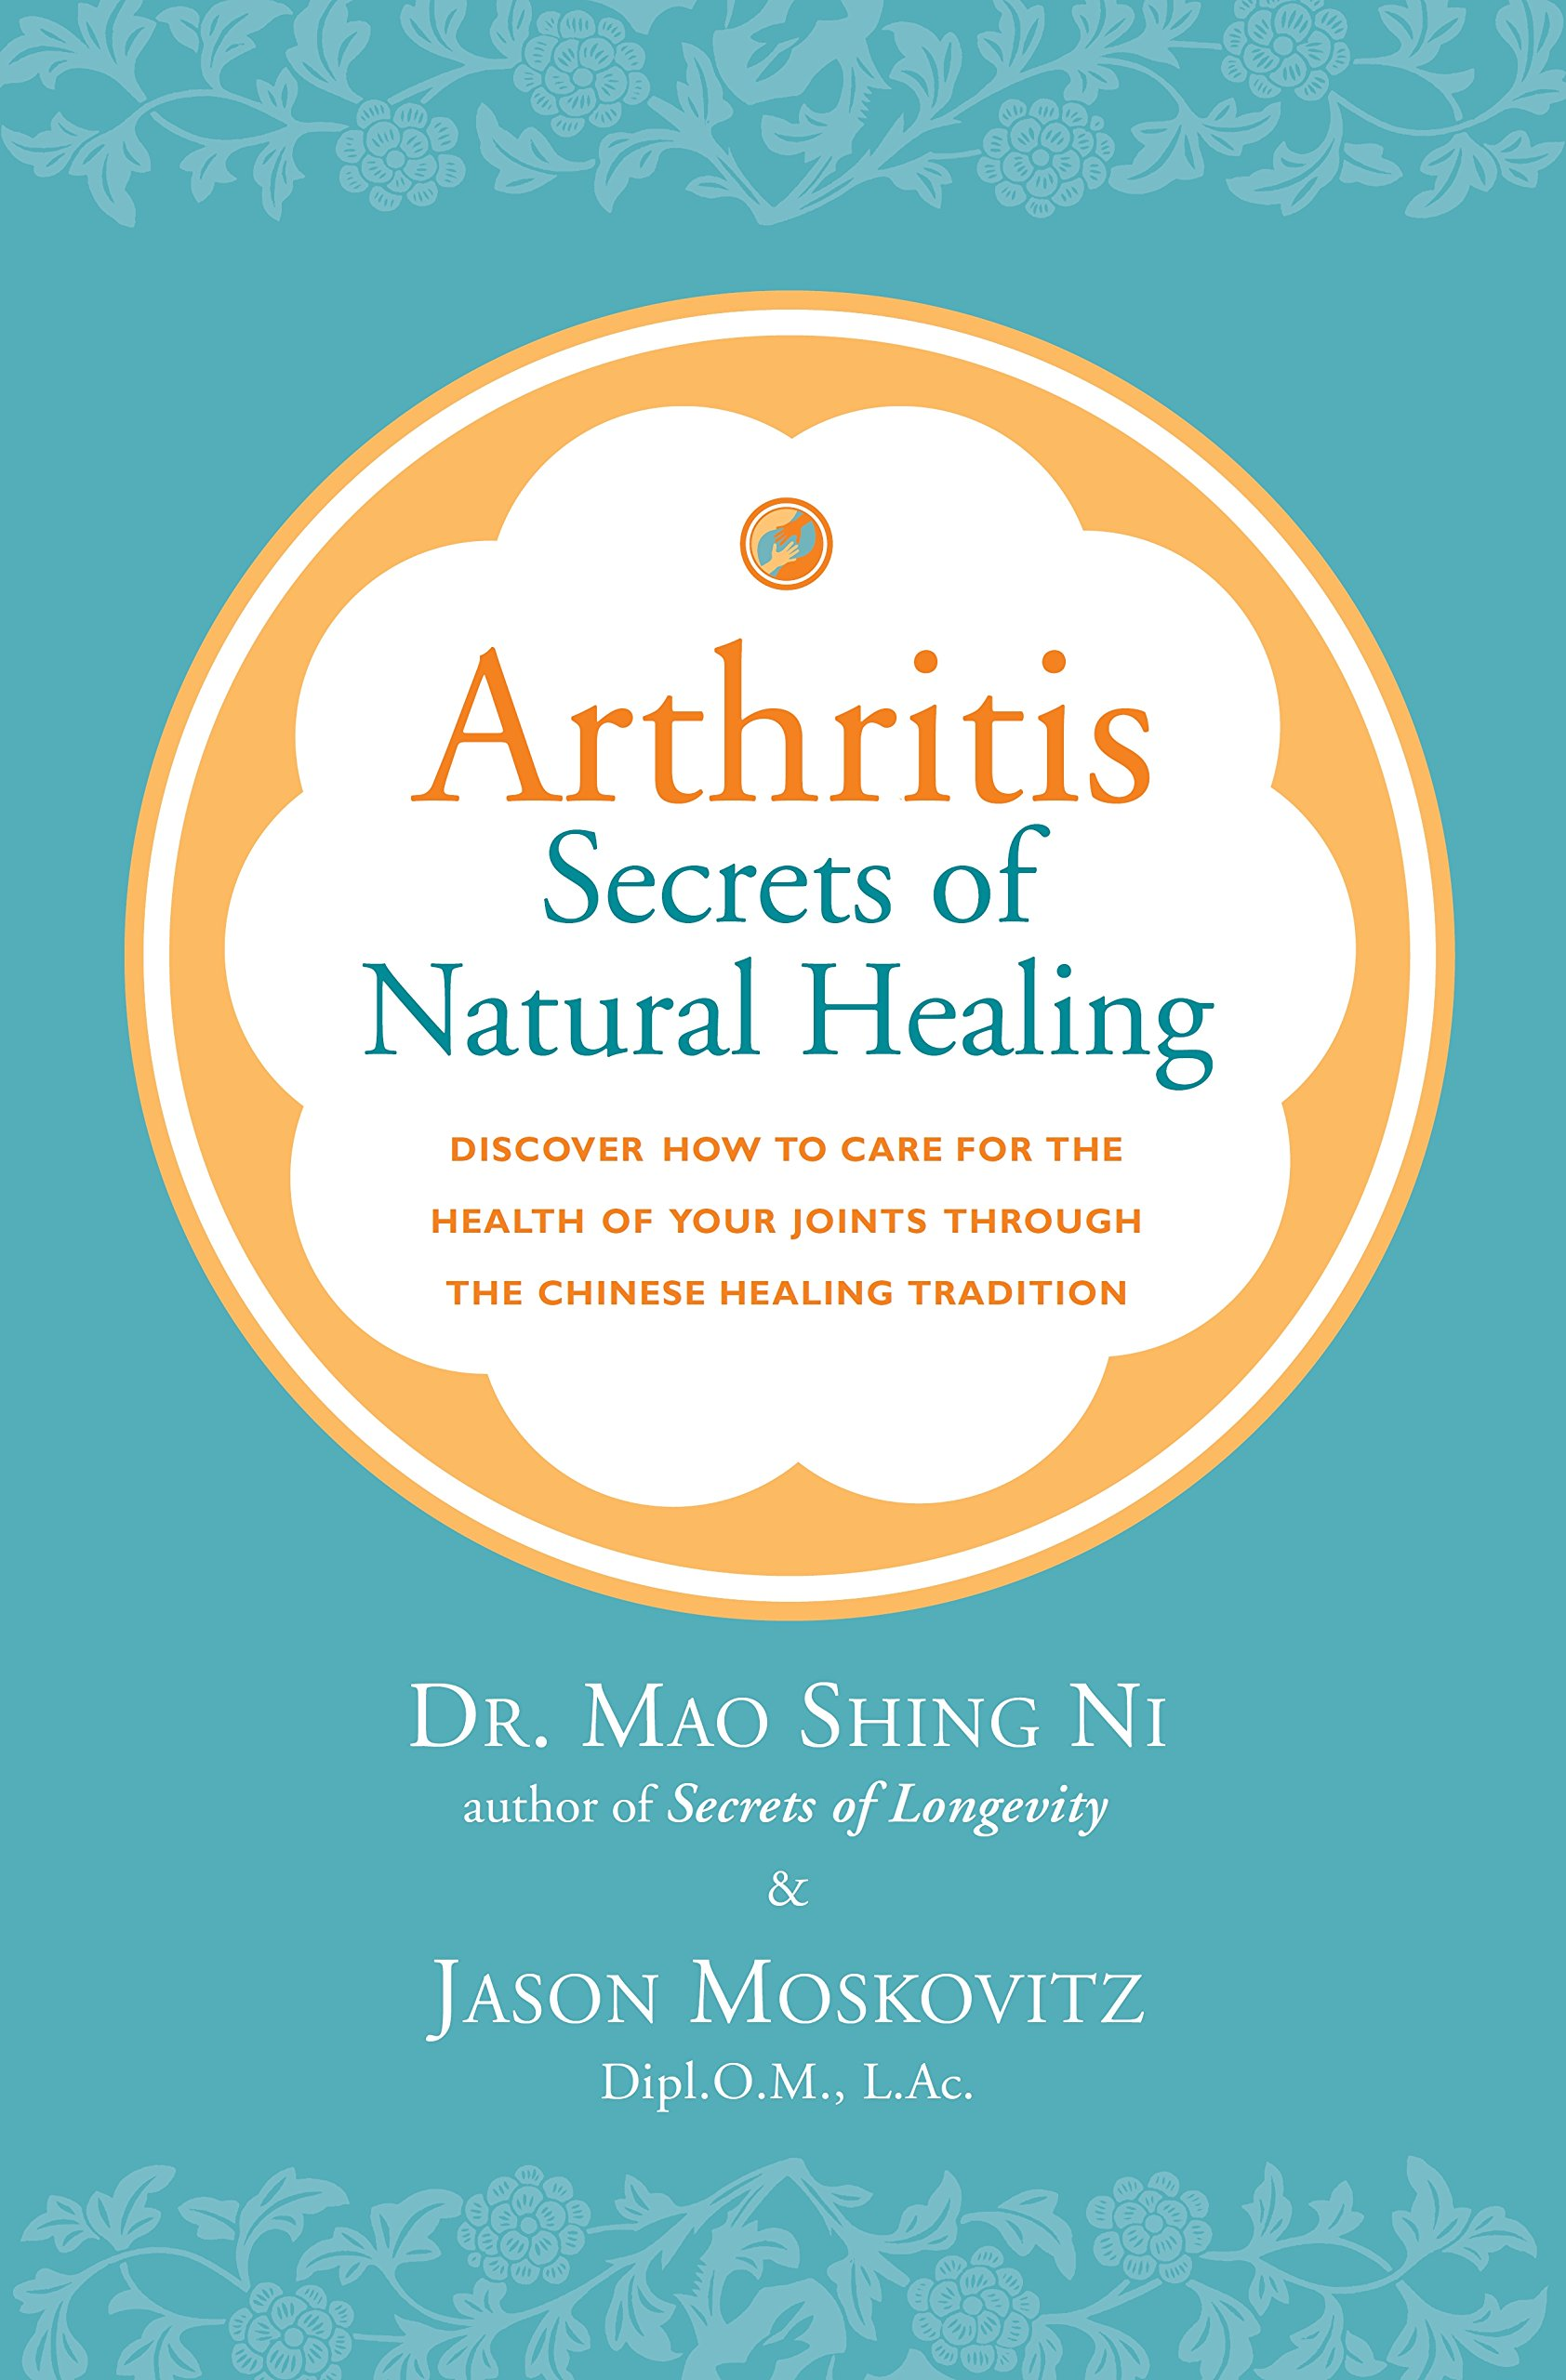 Arthritis: Secrets of Natural Healing